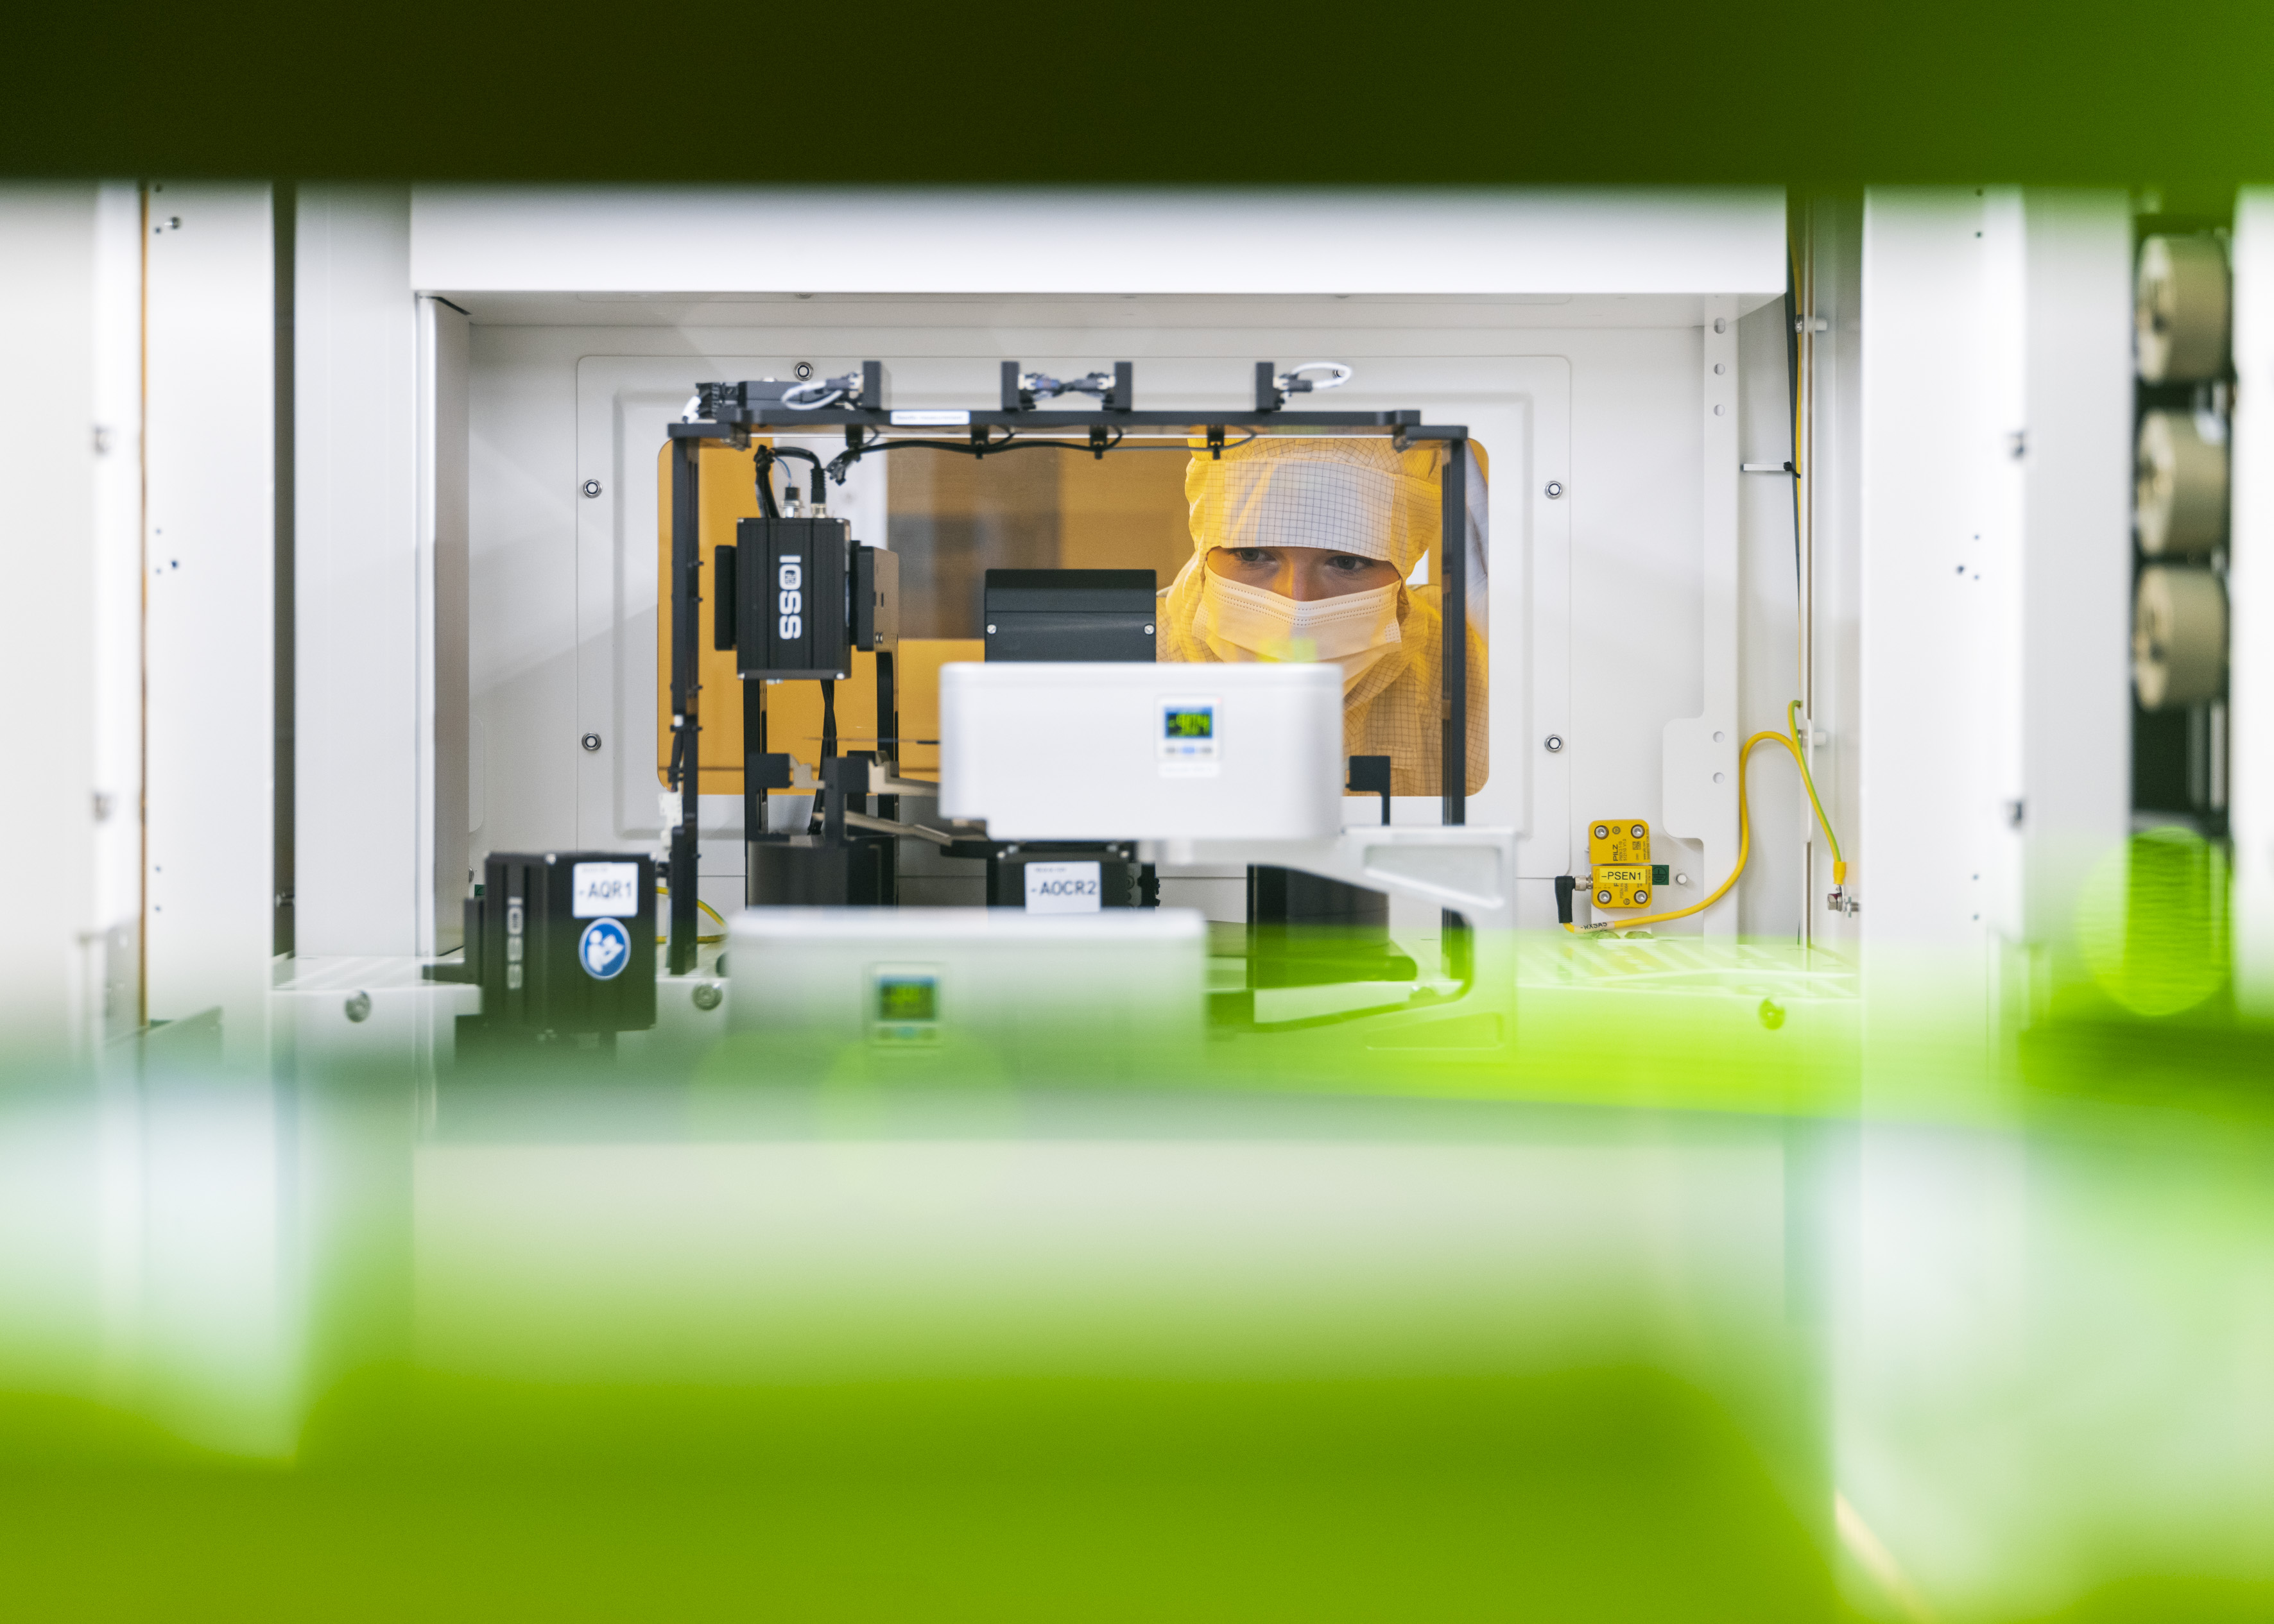 Bosch chip factory of the future in Dresden